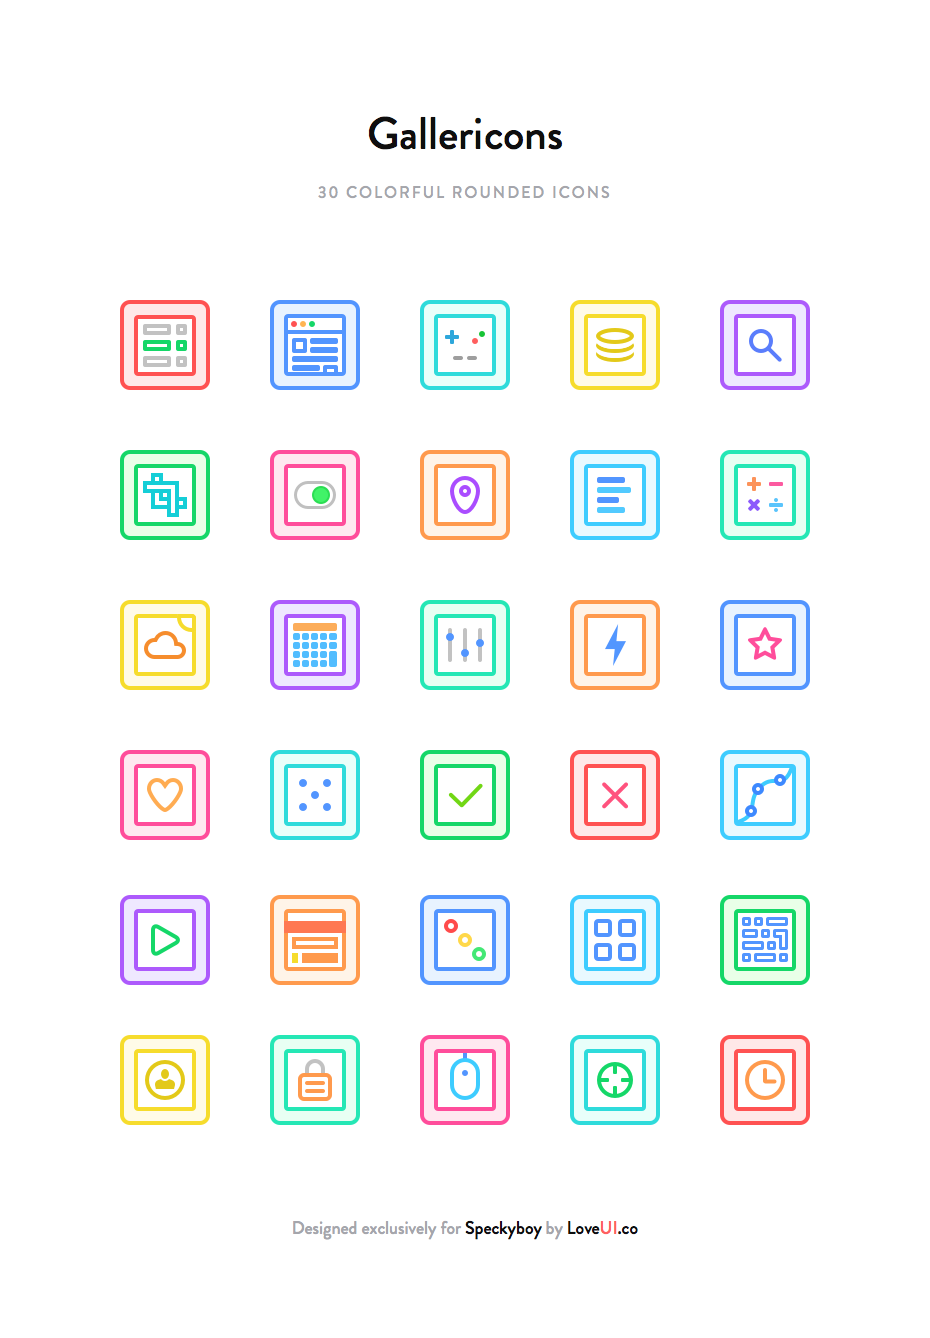 Gallericons Icon Set 30 flat rounded colourful Sketch PNG